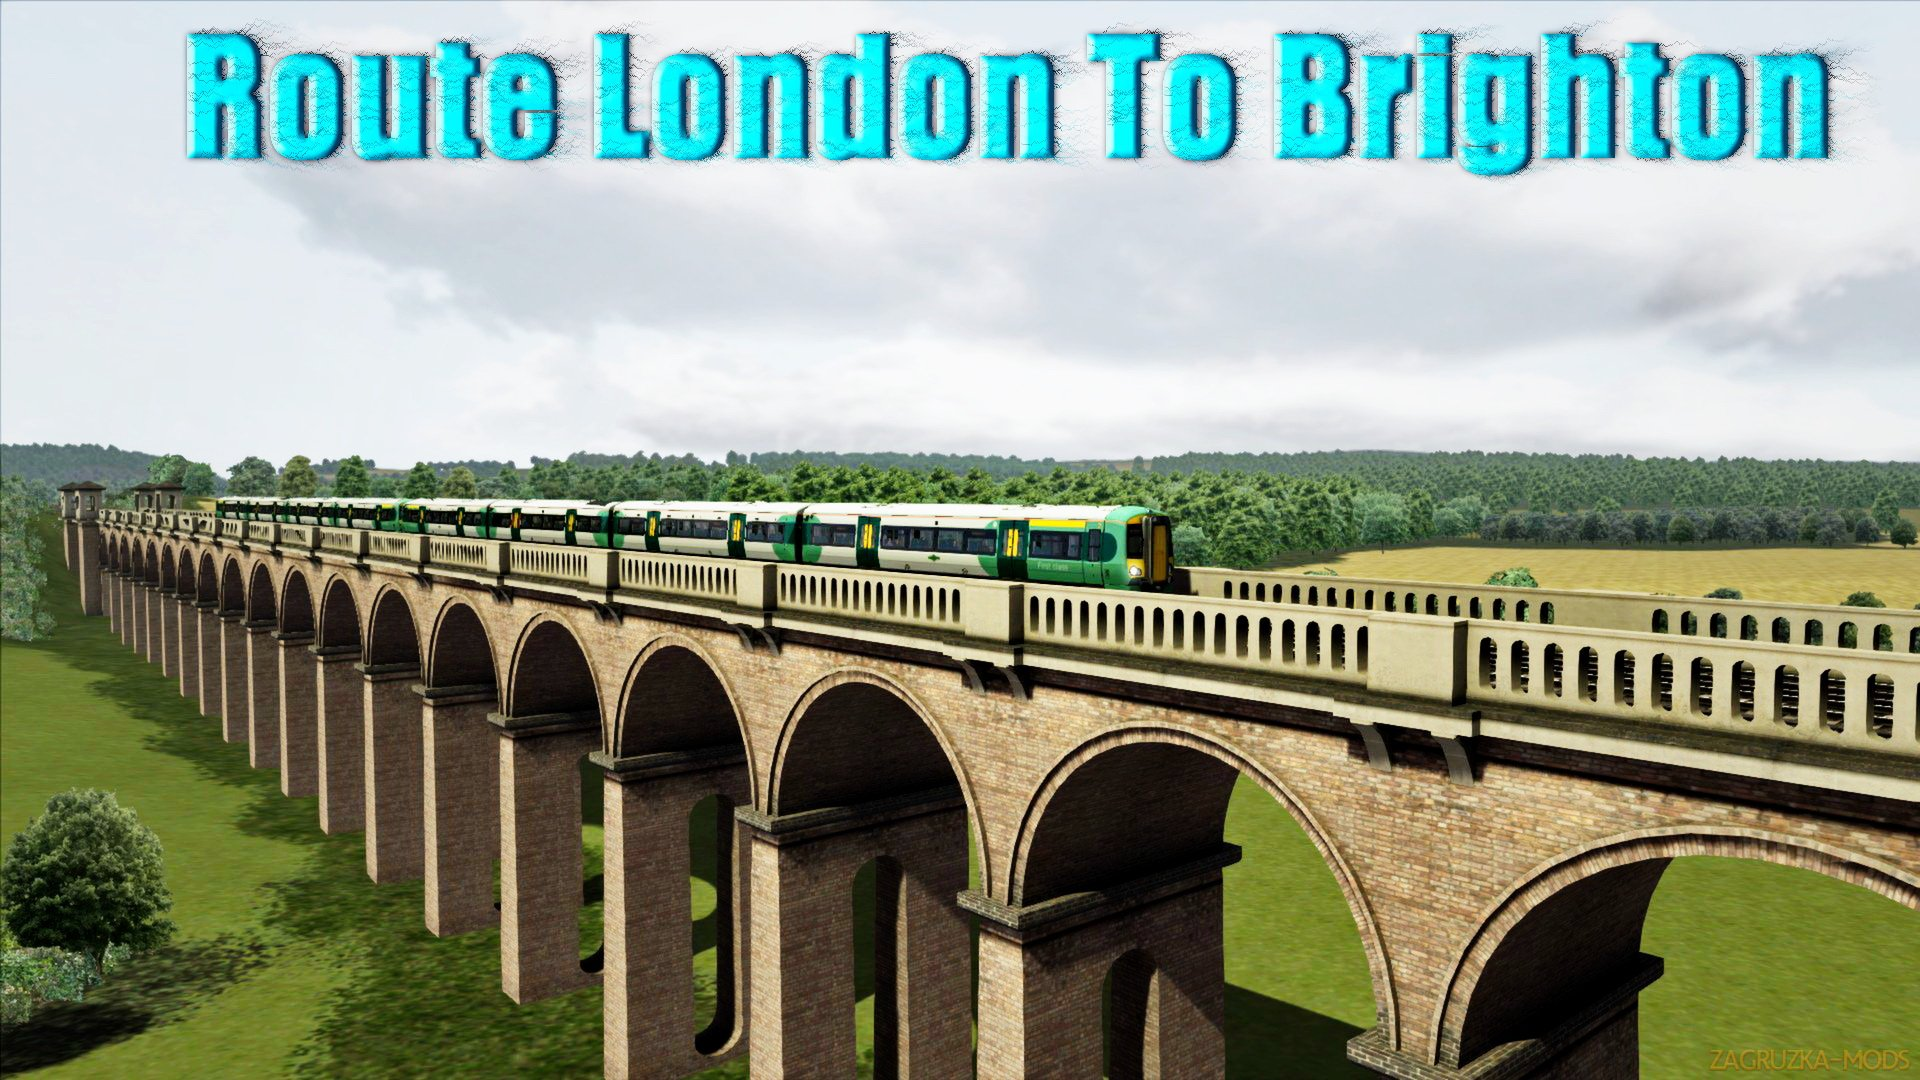 Route London To Brighton v1.0 for TS 2016